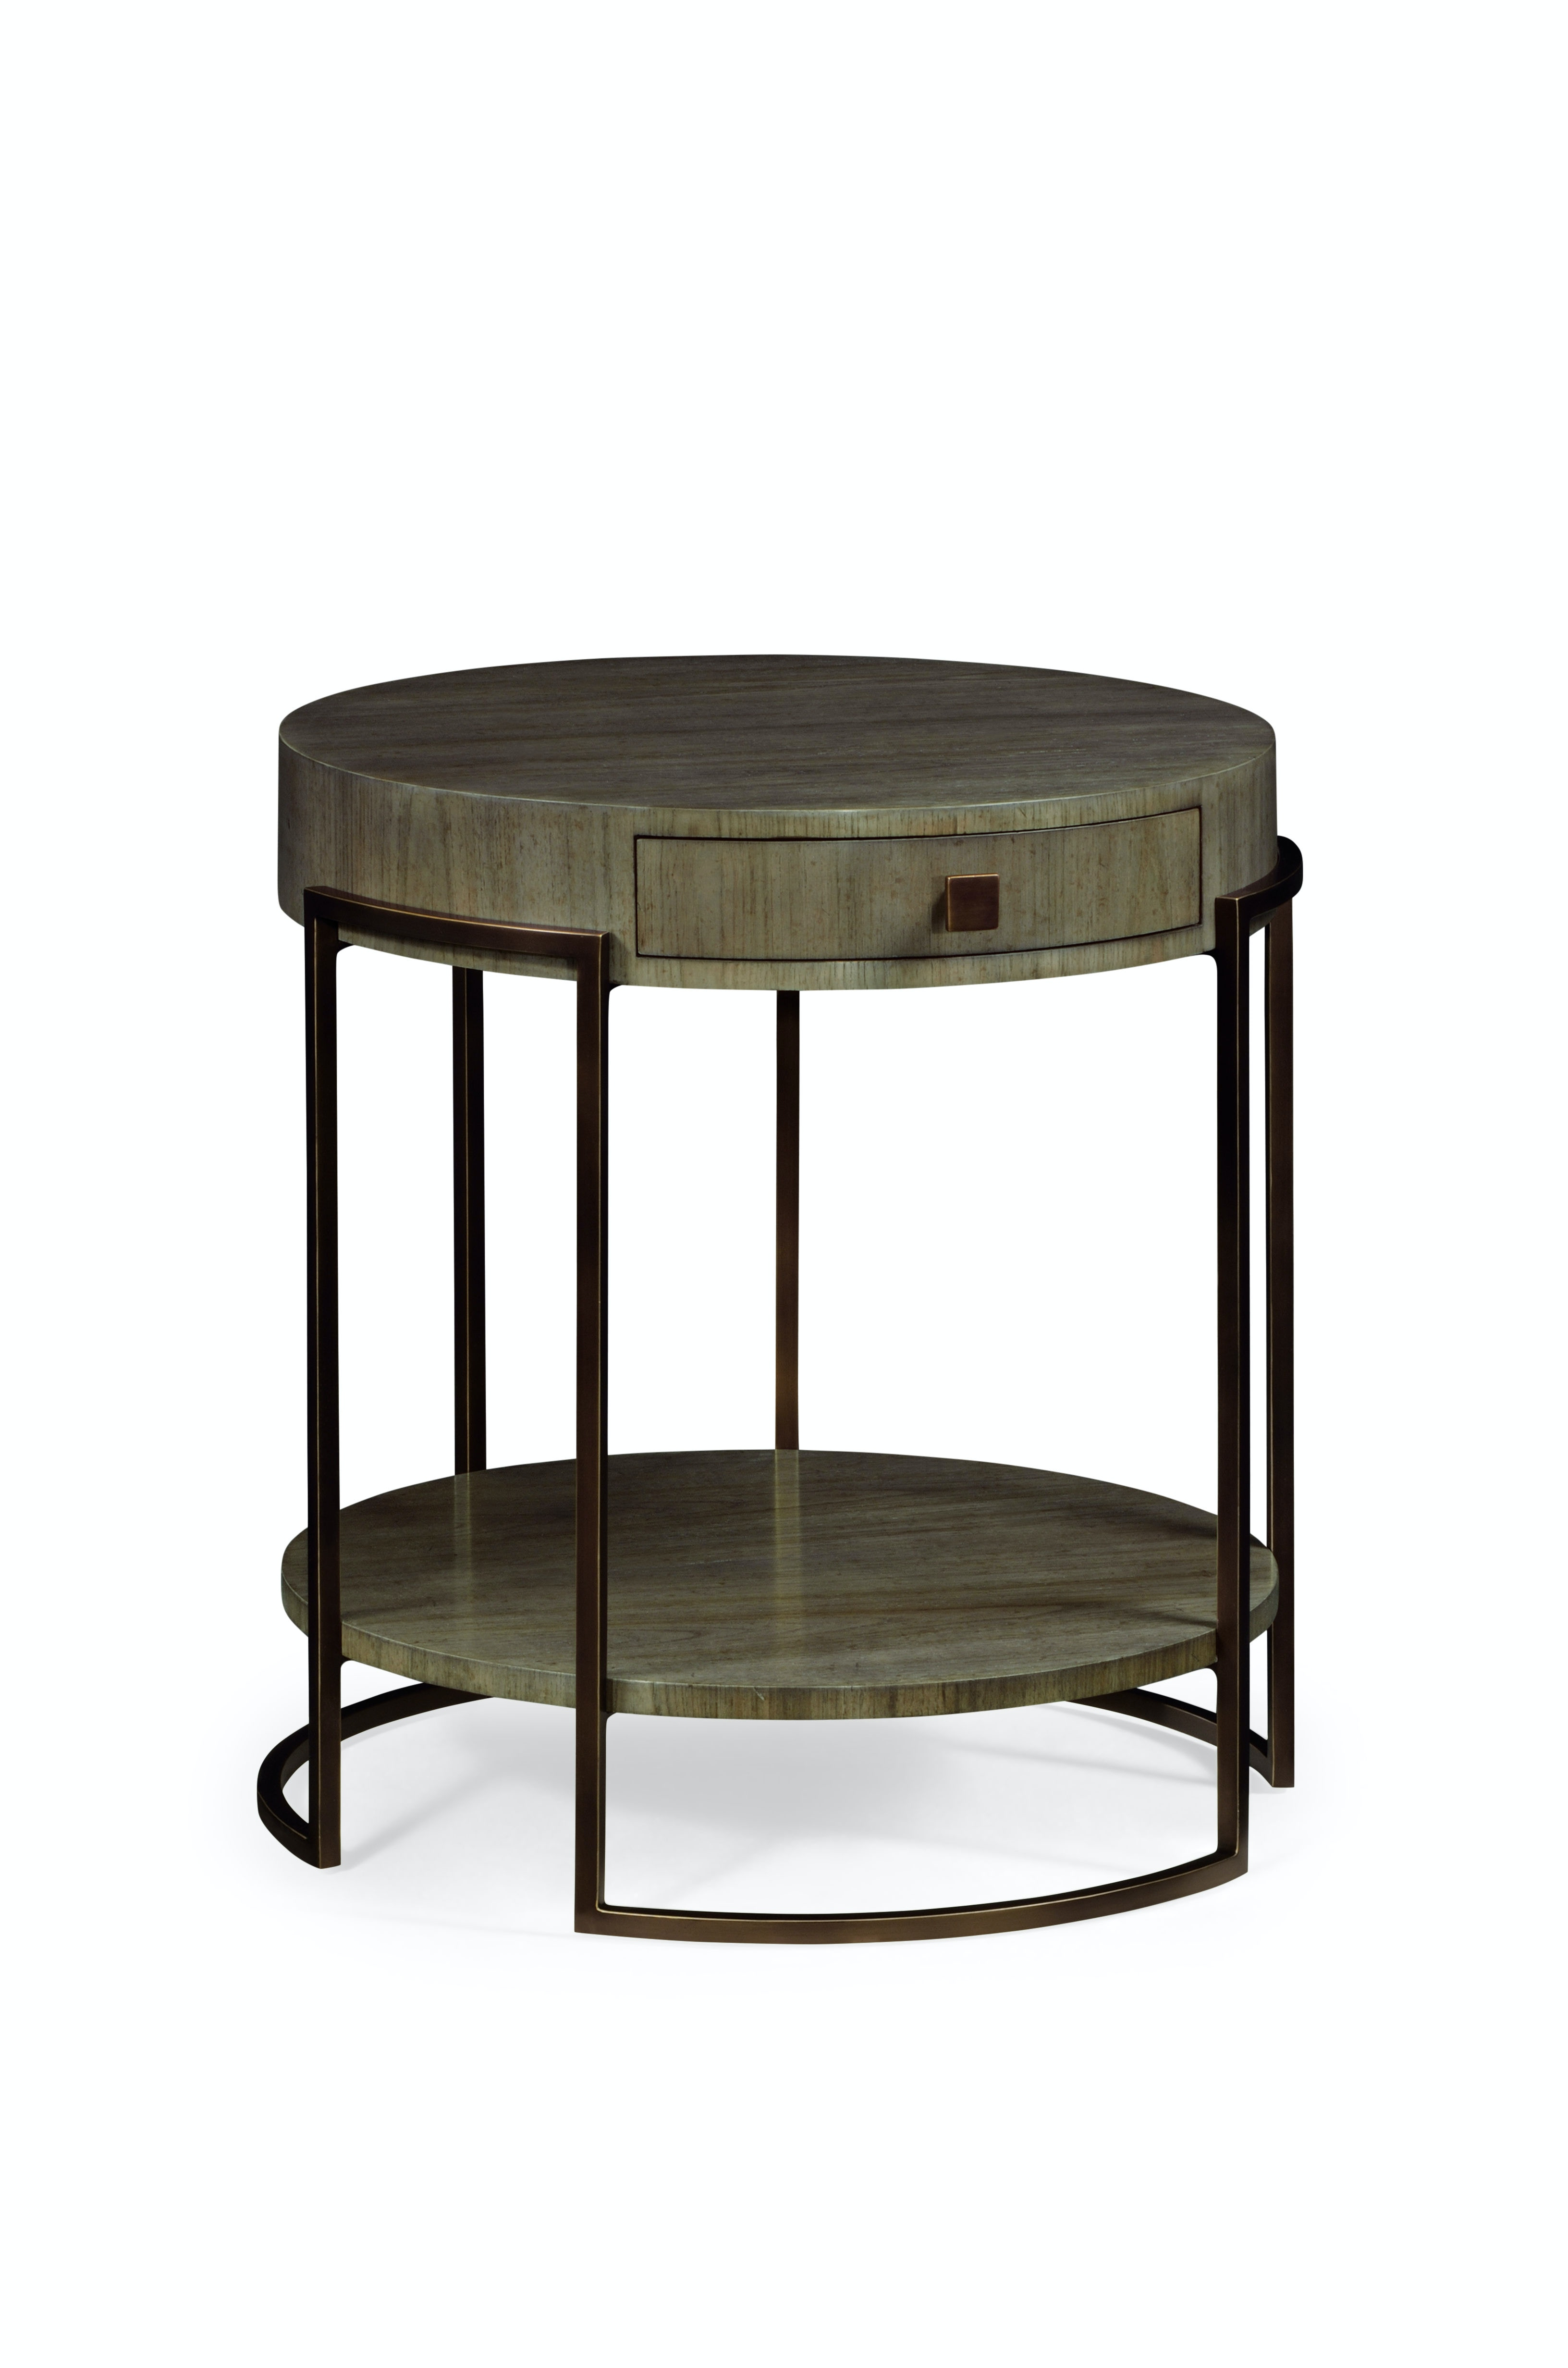 Jonathan Charles Light Bronze Iron Round Side Table In Chestnut 491137 LGC  From Walter E